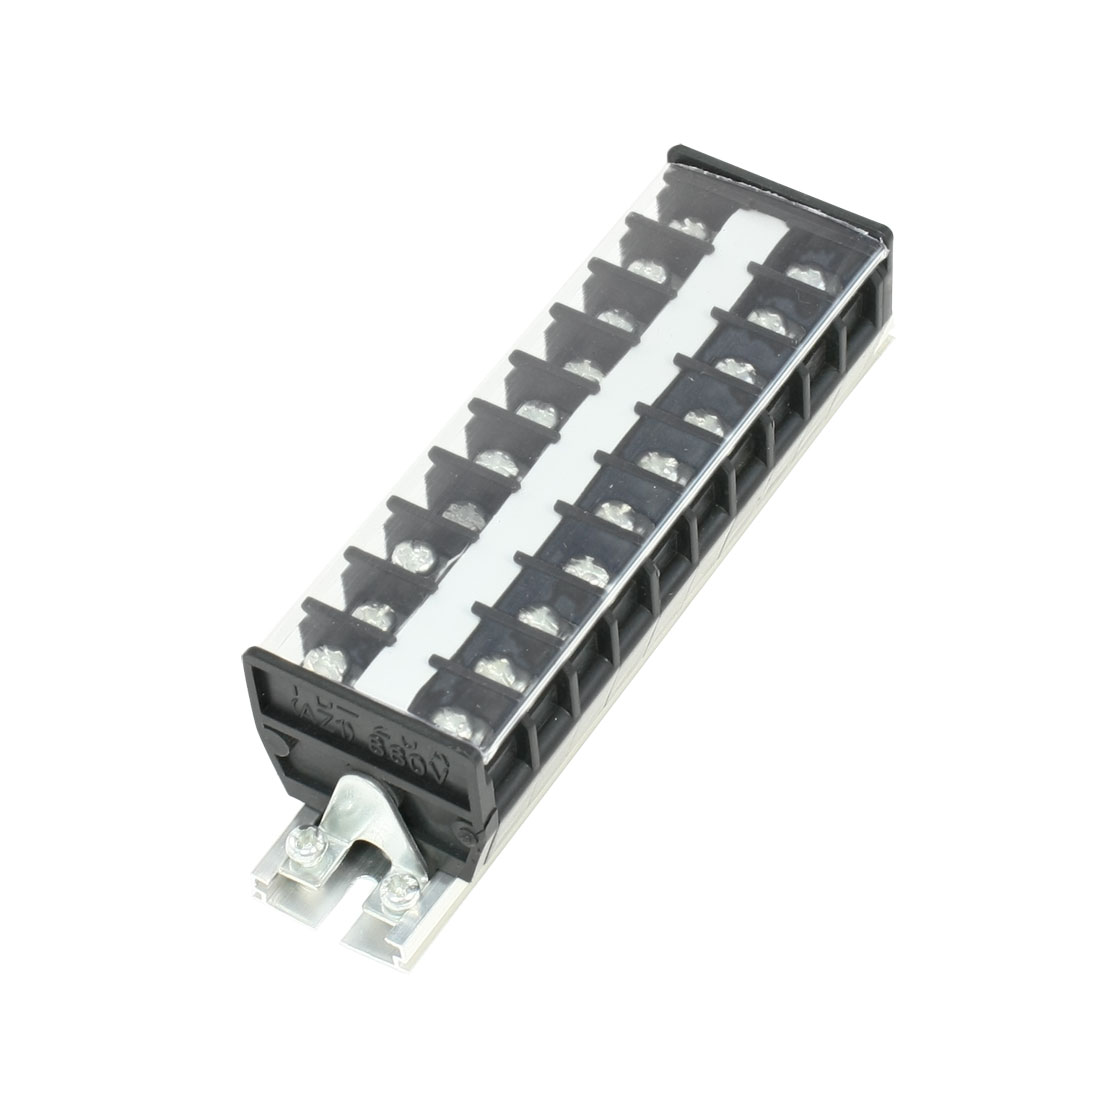 660V 20A DIN Rail Base Dual Row 10 Position Screw Terminal Barrier Strip